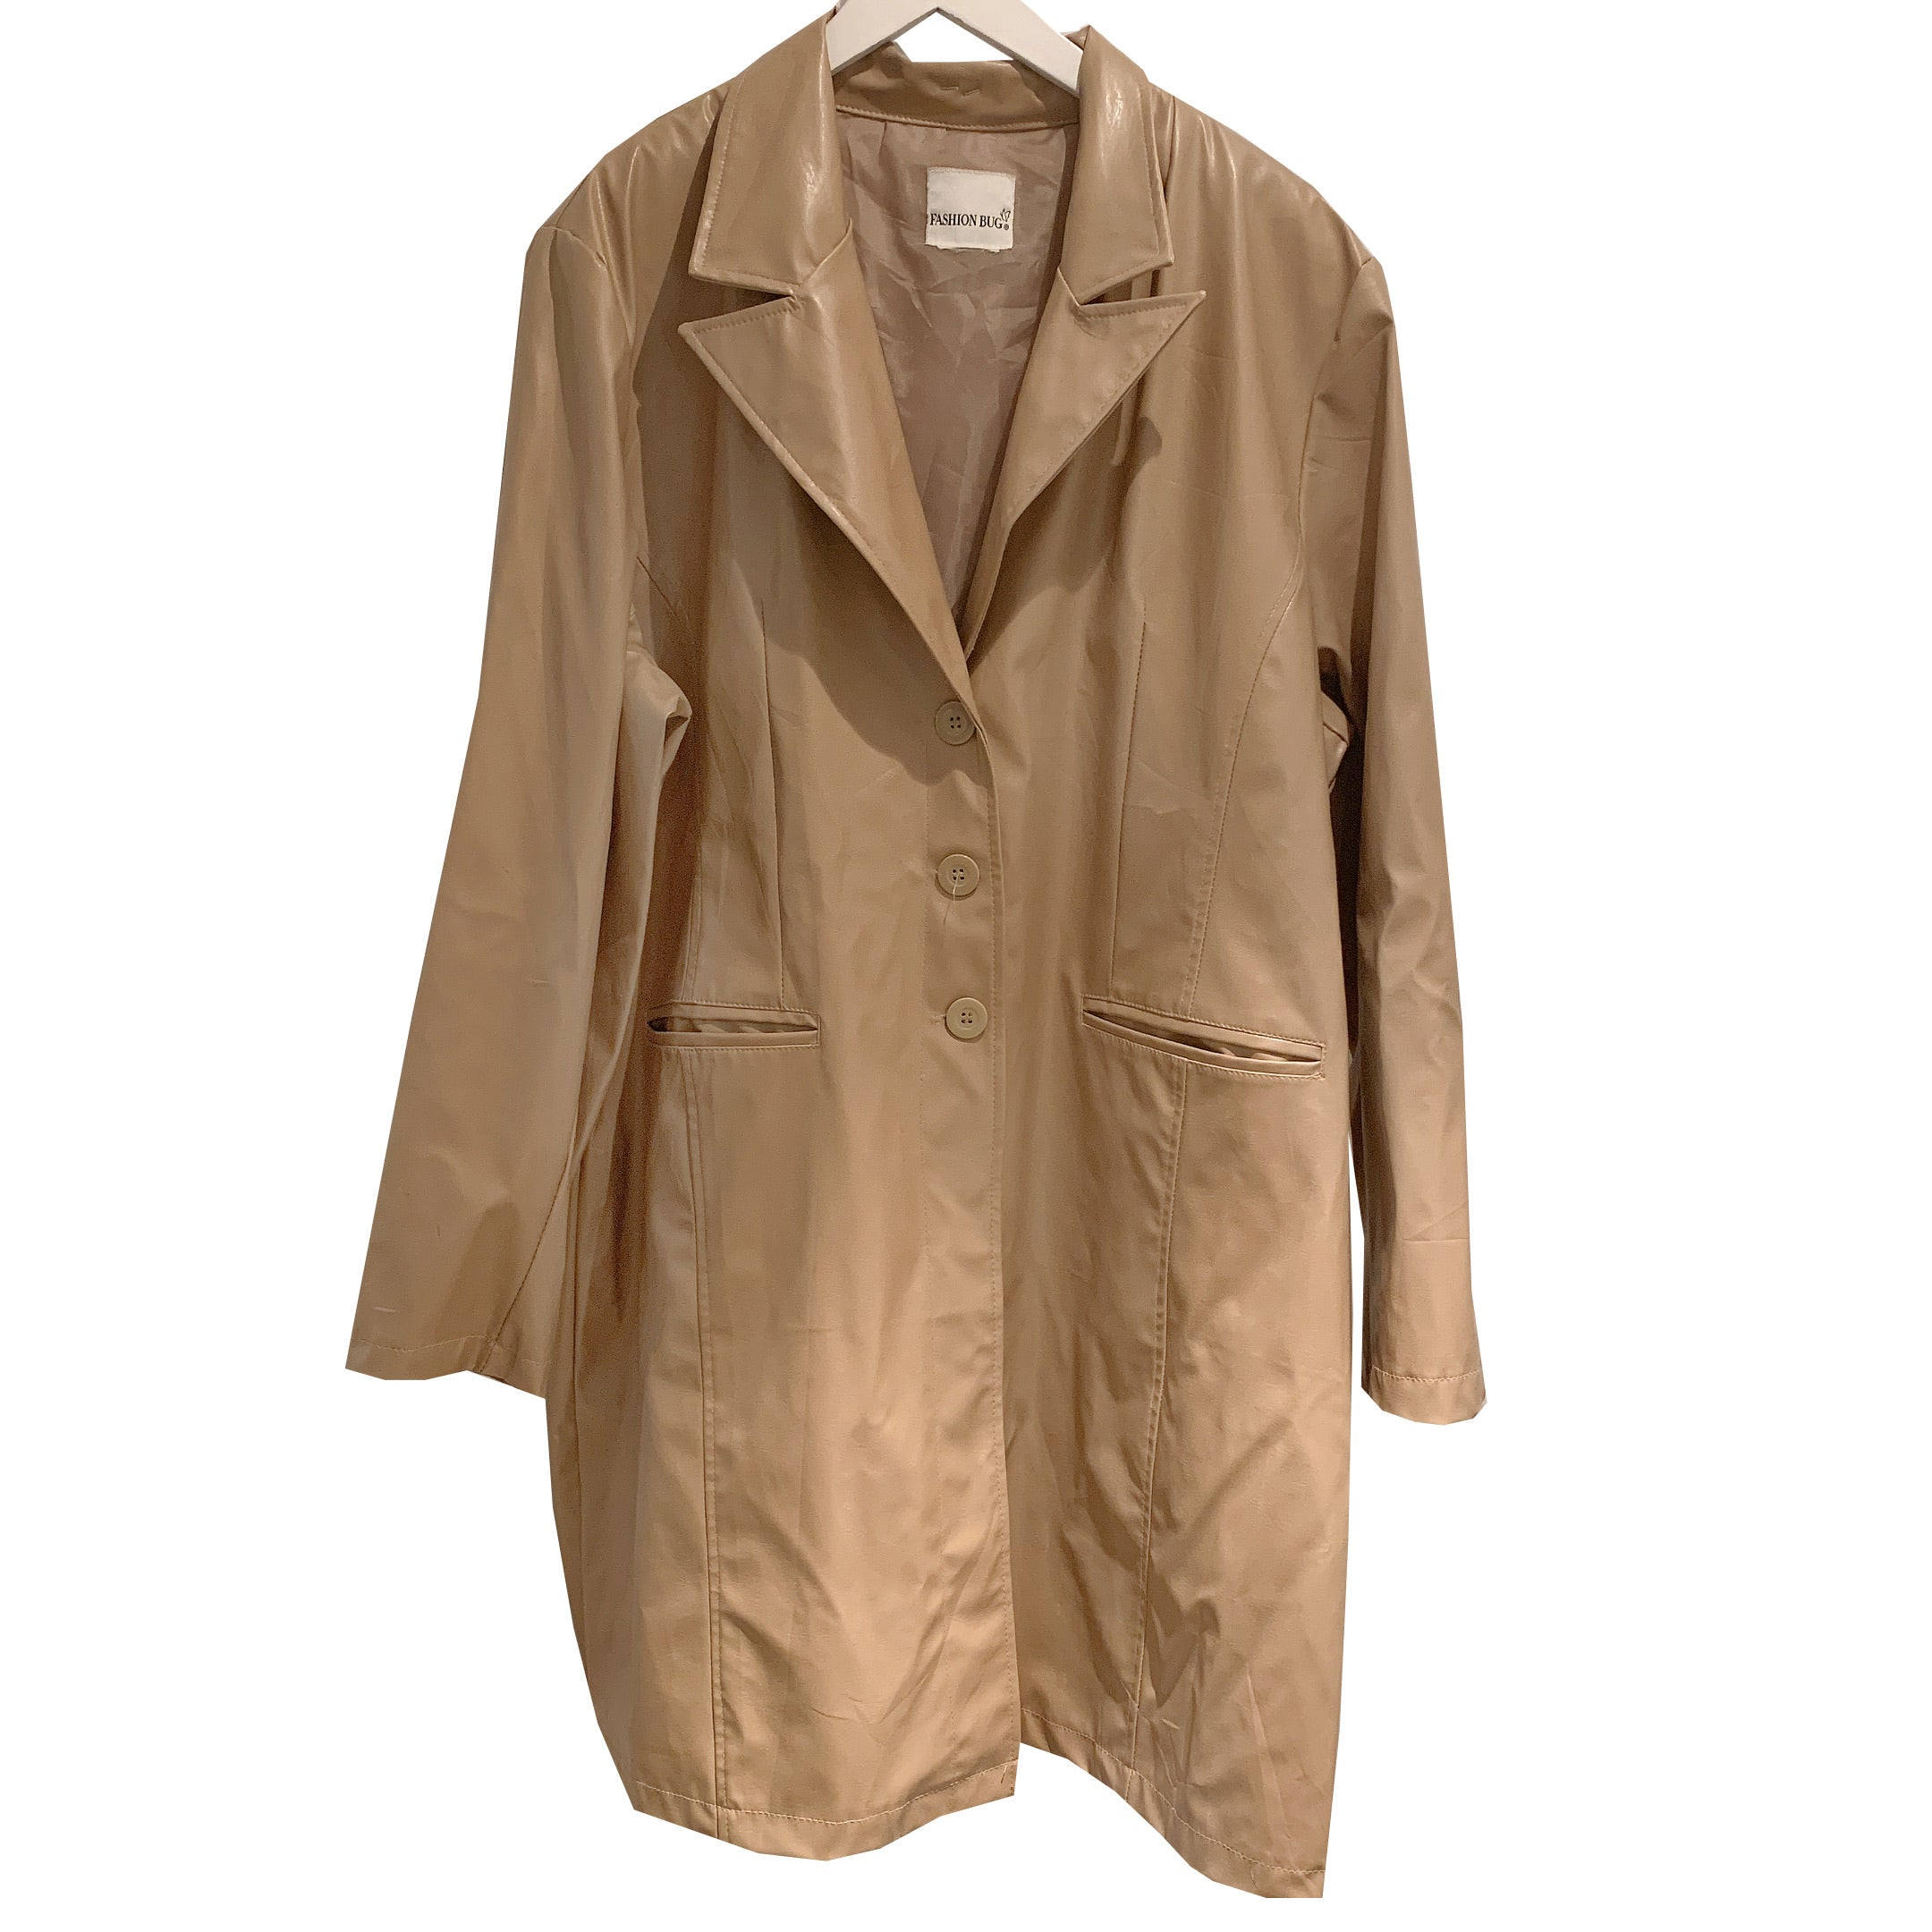 Nude pvc wet coat